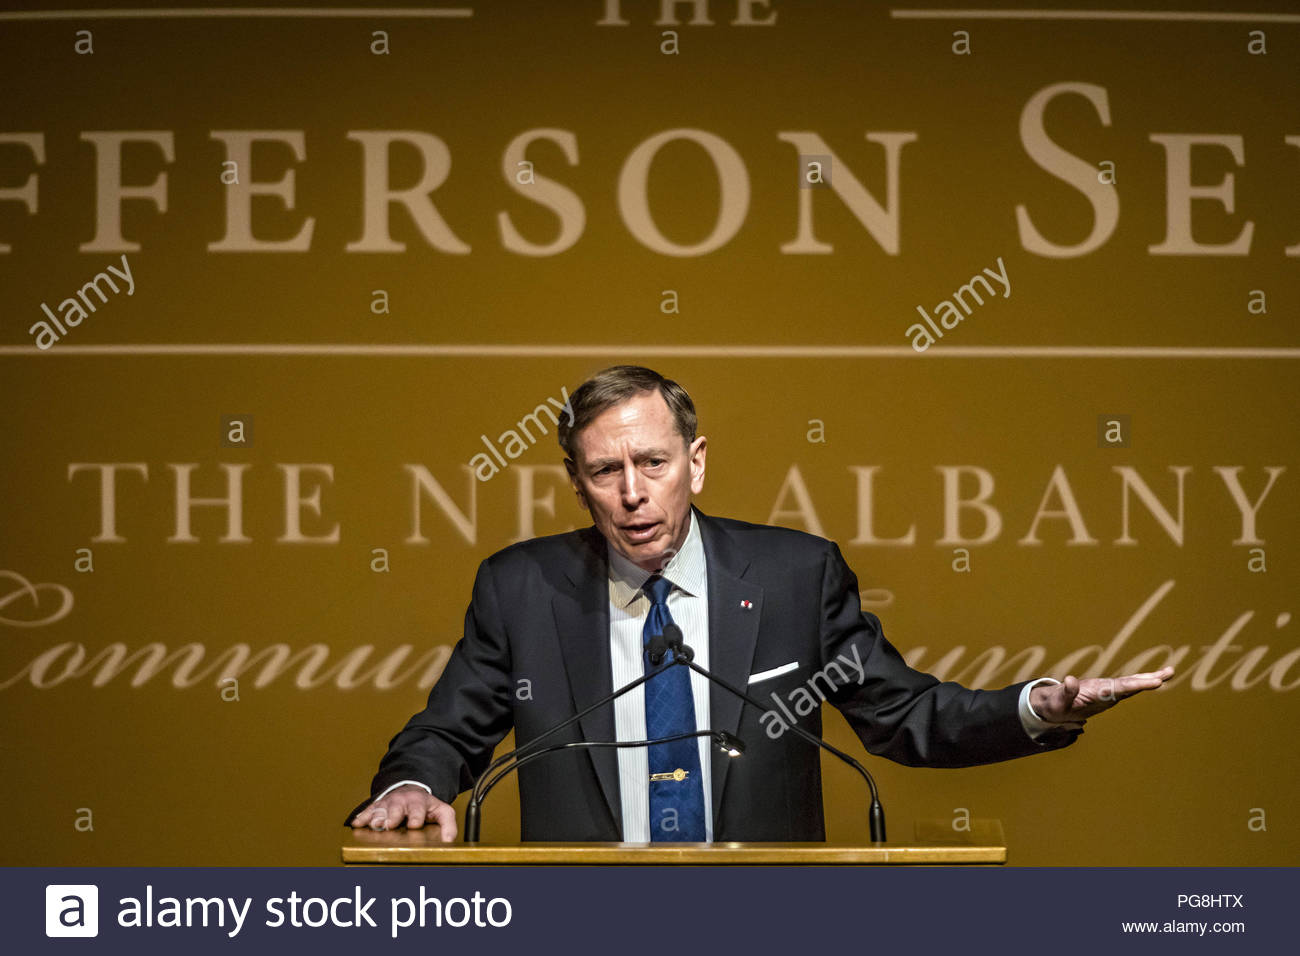 David Jefferson Stock Photos David Jefferson Stock Images Alamy